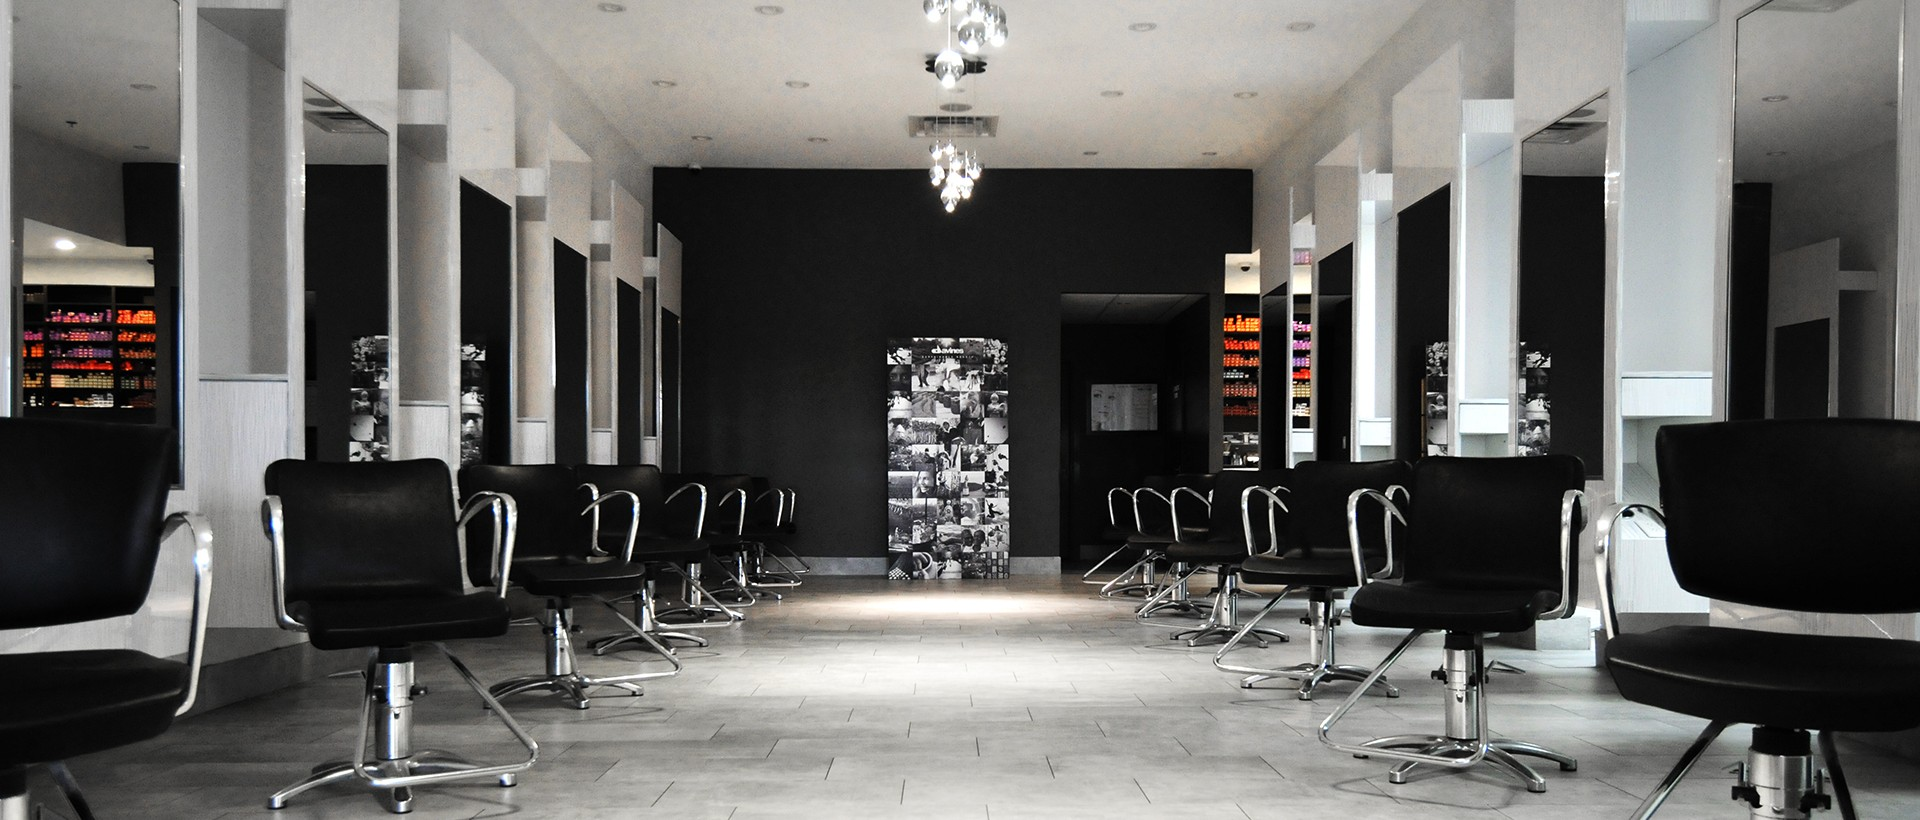 Salon collage hair and beauty salon award winning for Hair salon interiors photos